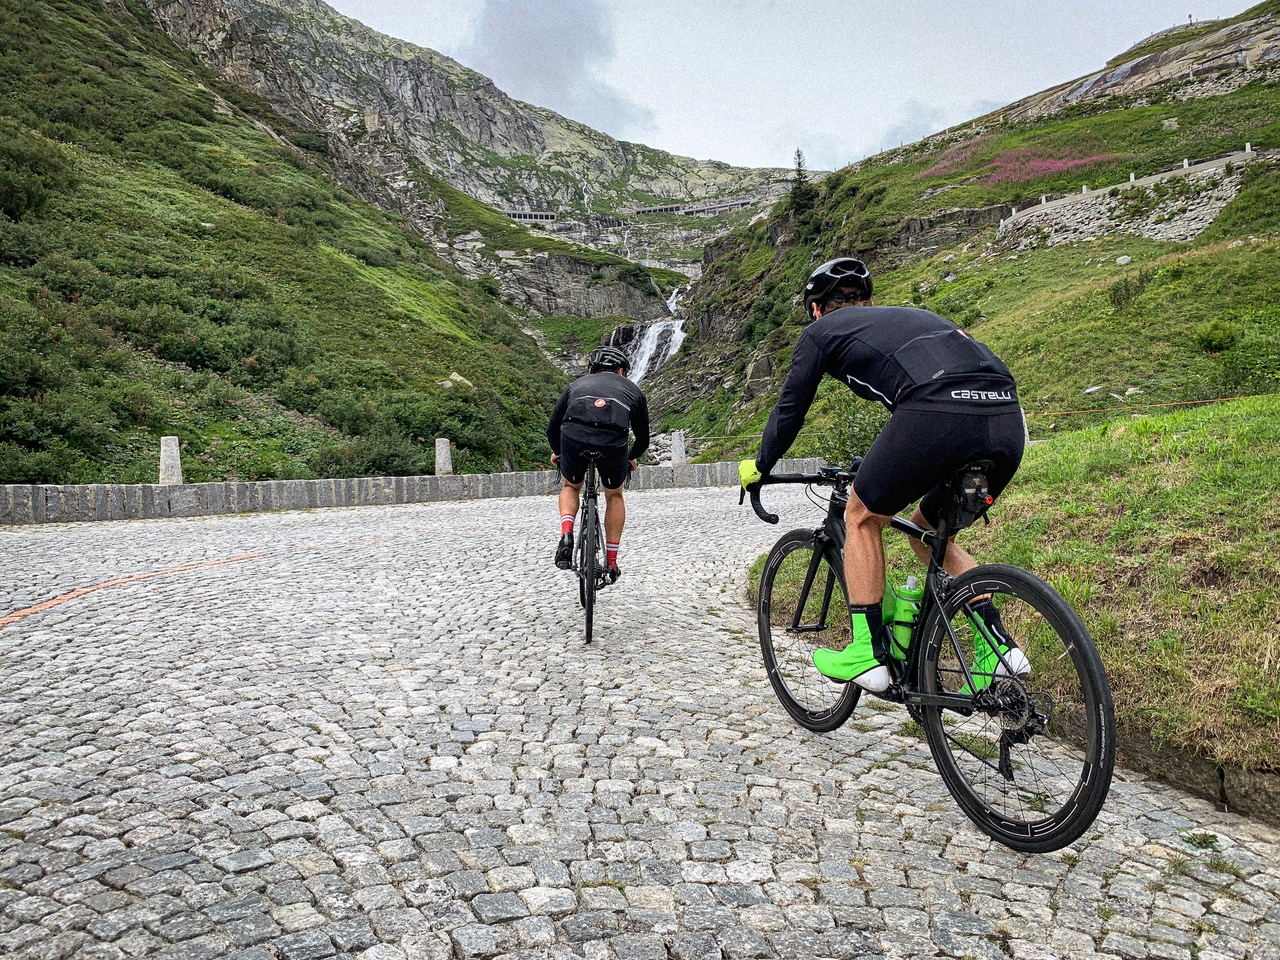 Cobbles and climbs, who could ask for more!